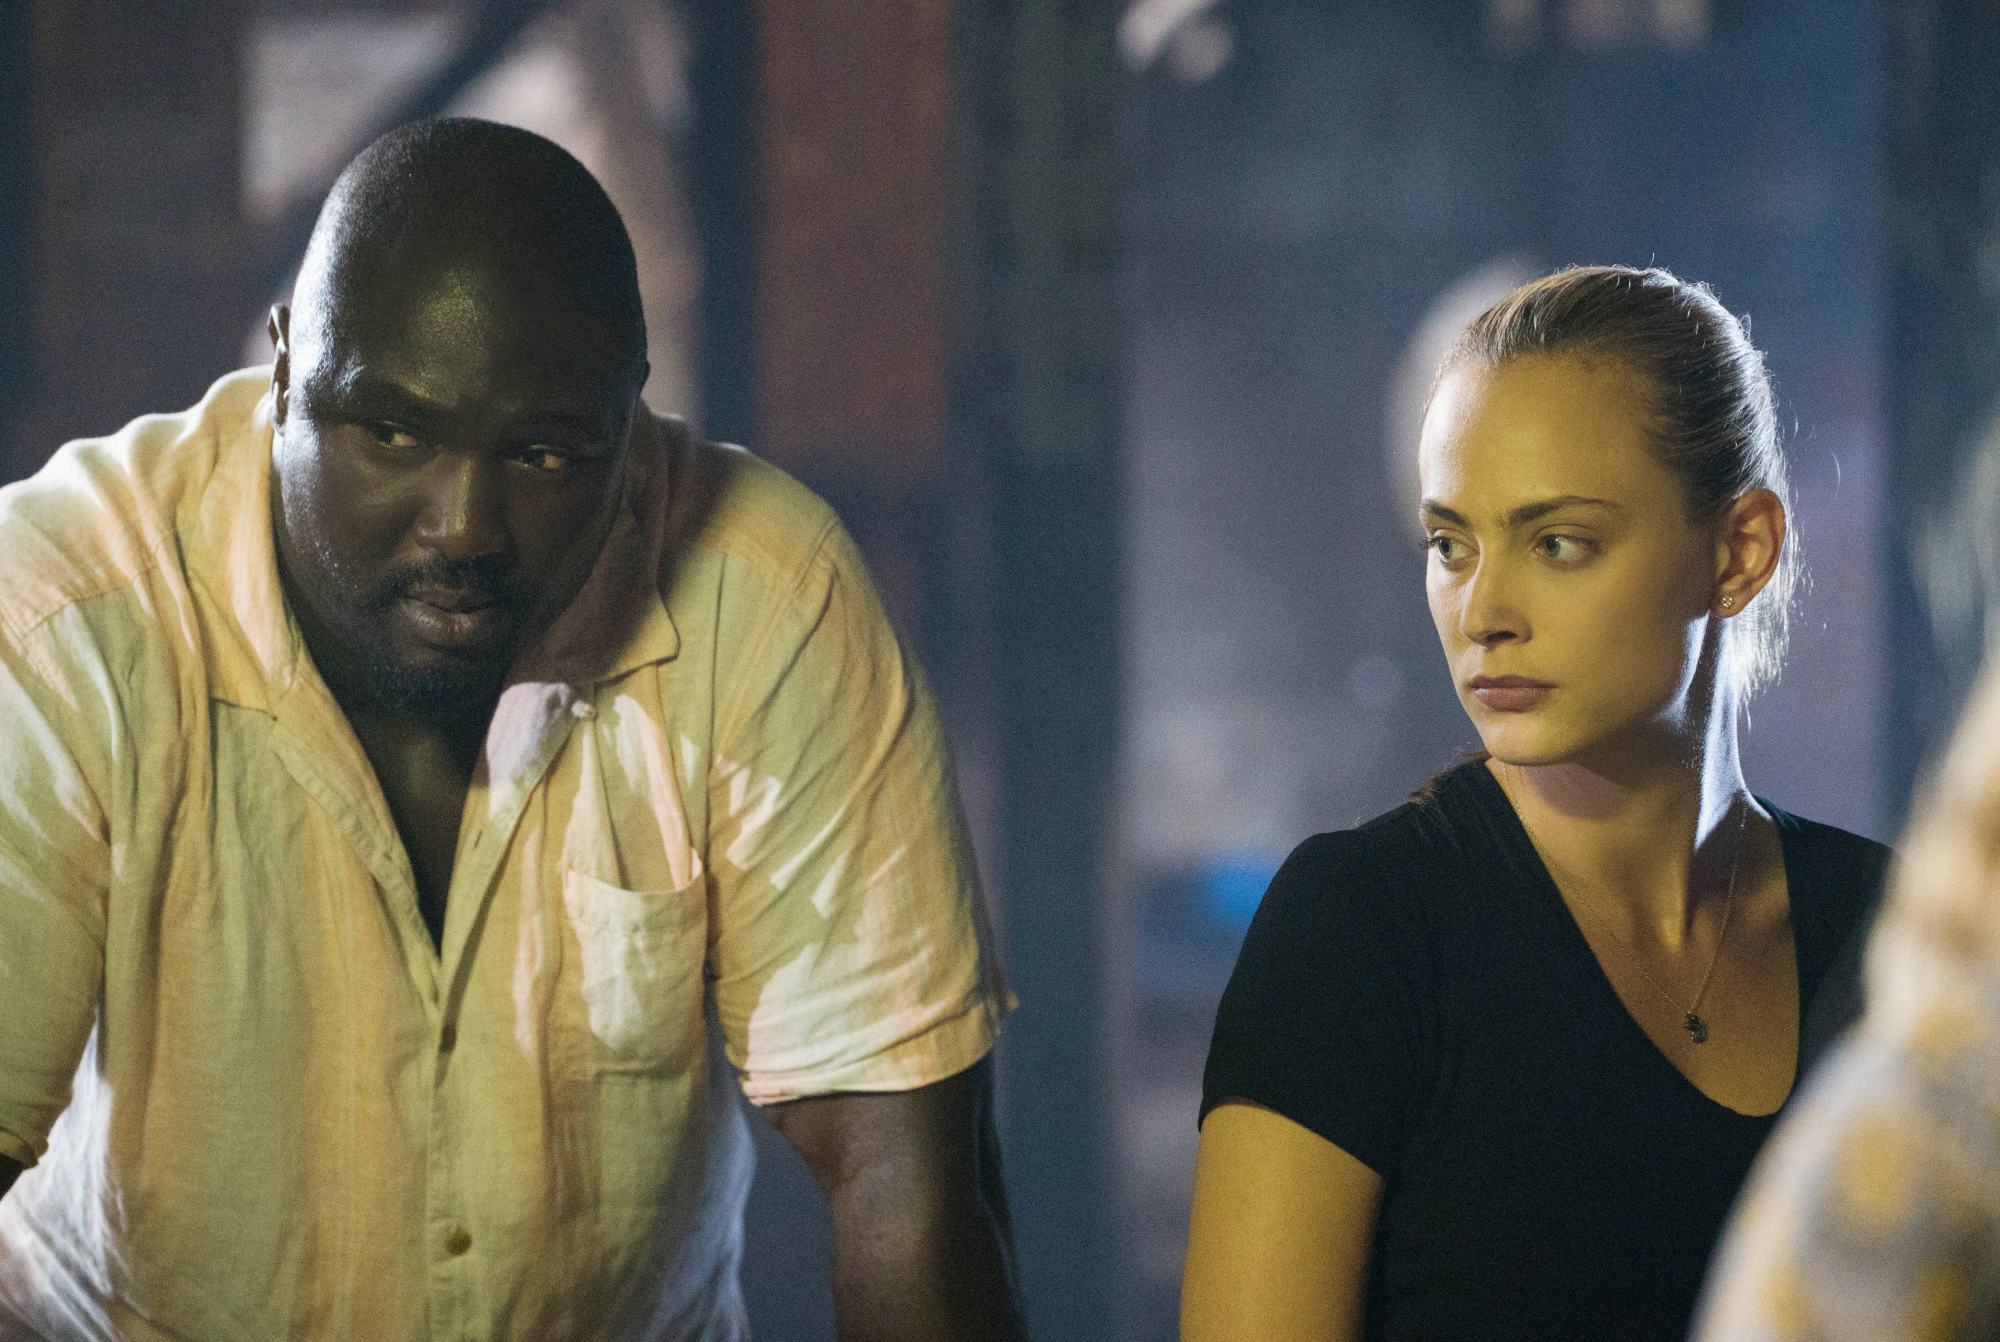 Nonso Anozie as Abraham Kenyatta and Nora Arnezeder as Chloe Tousignant.